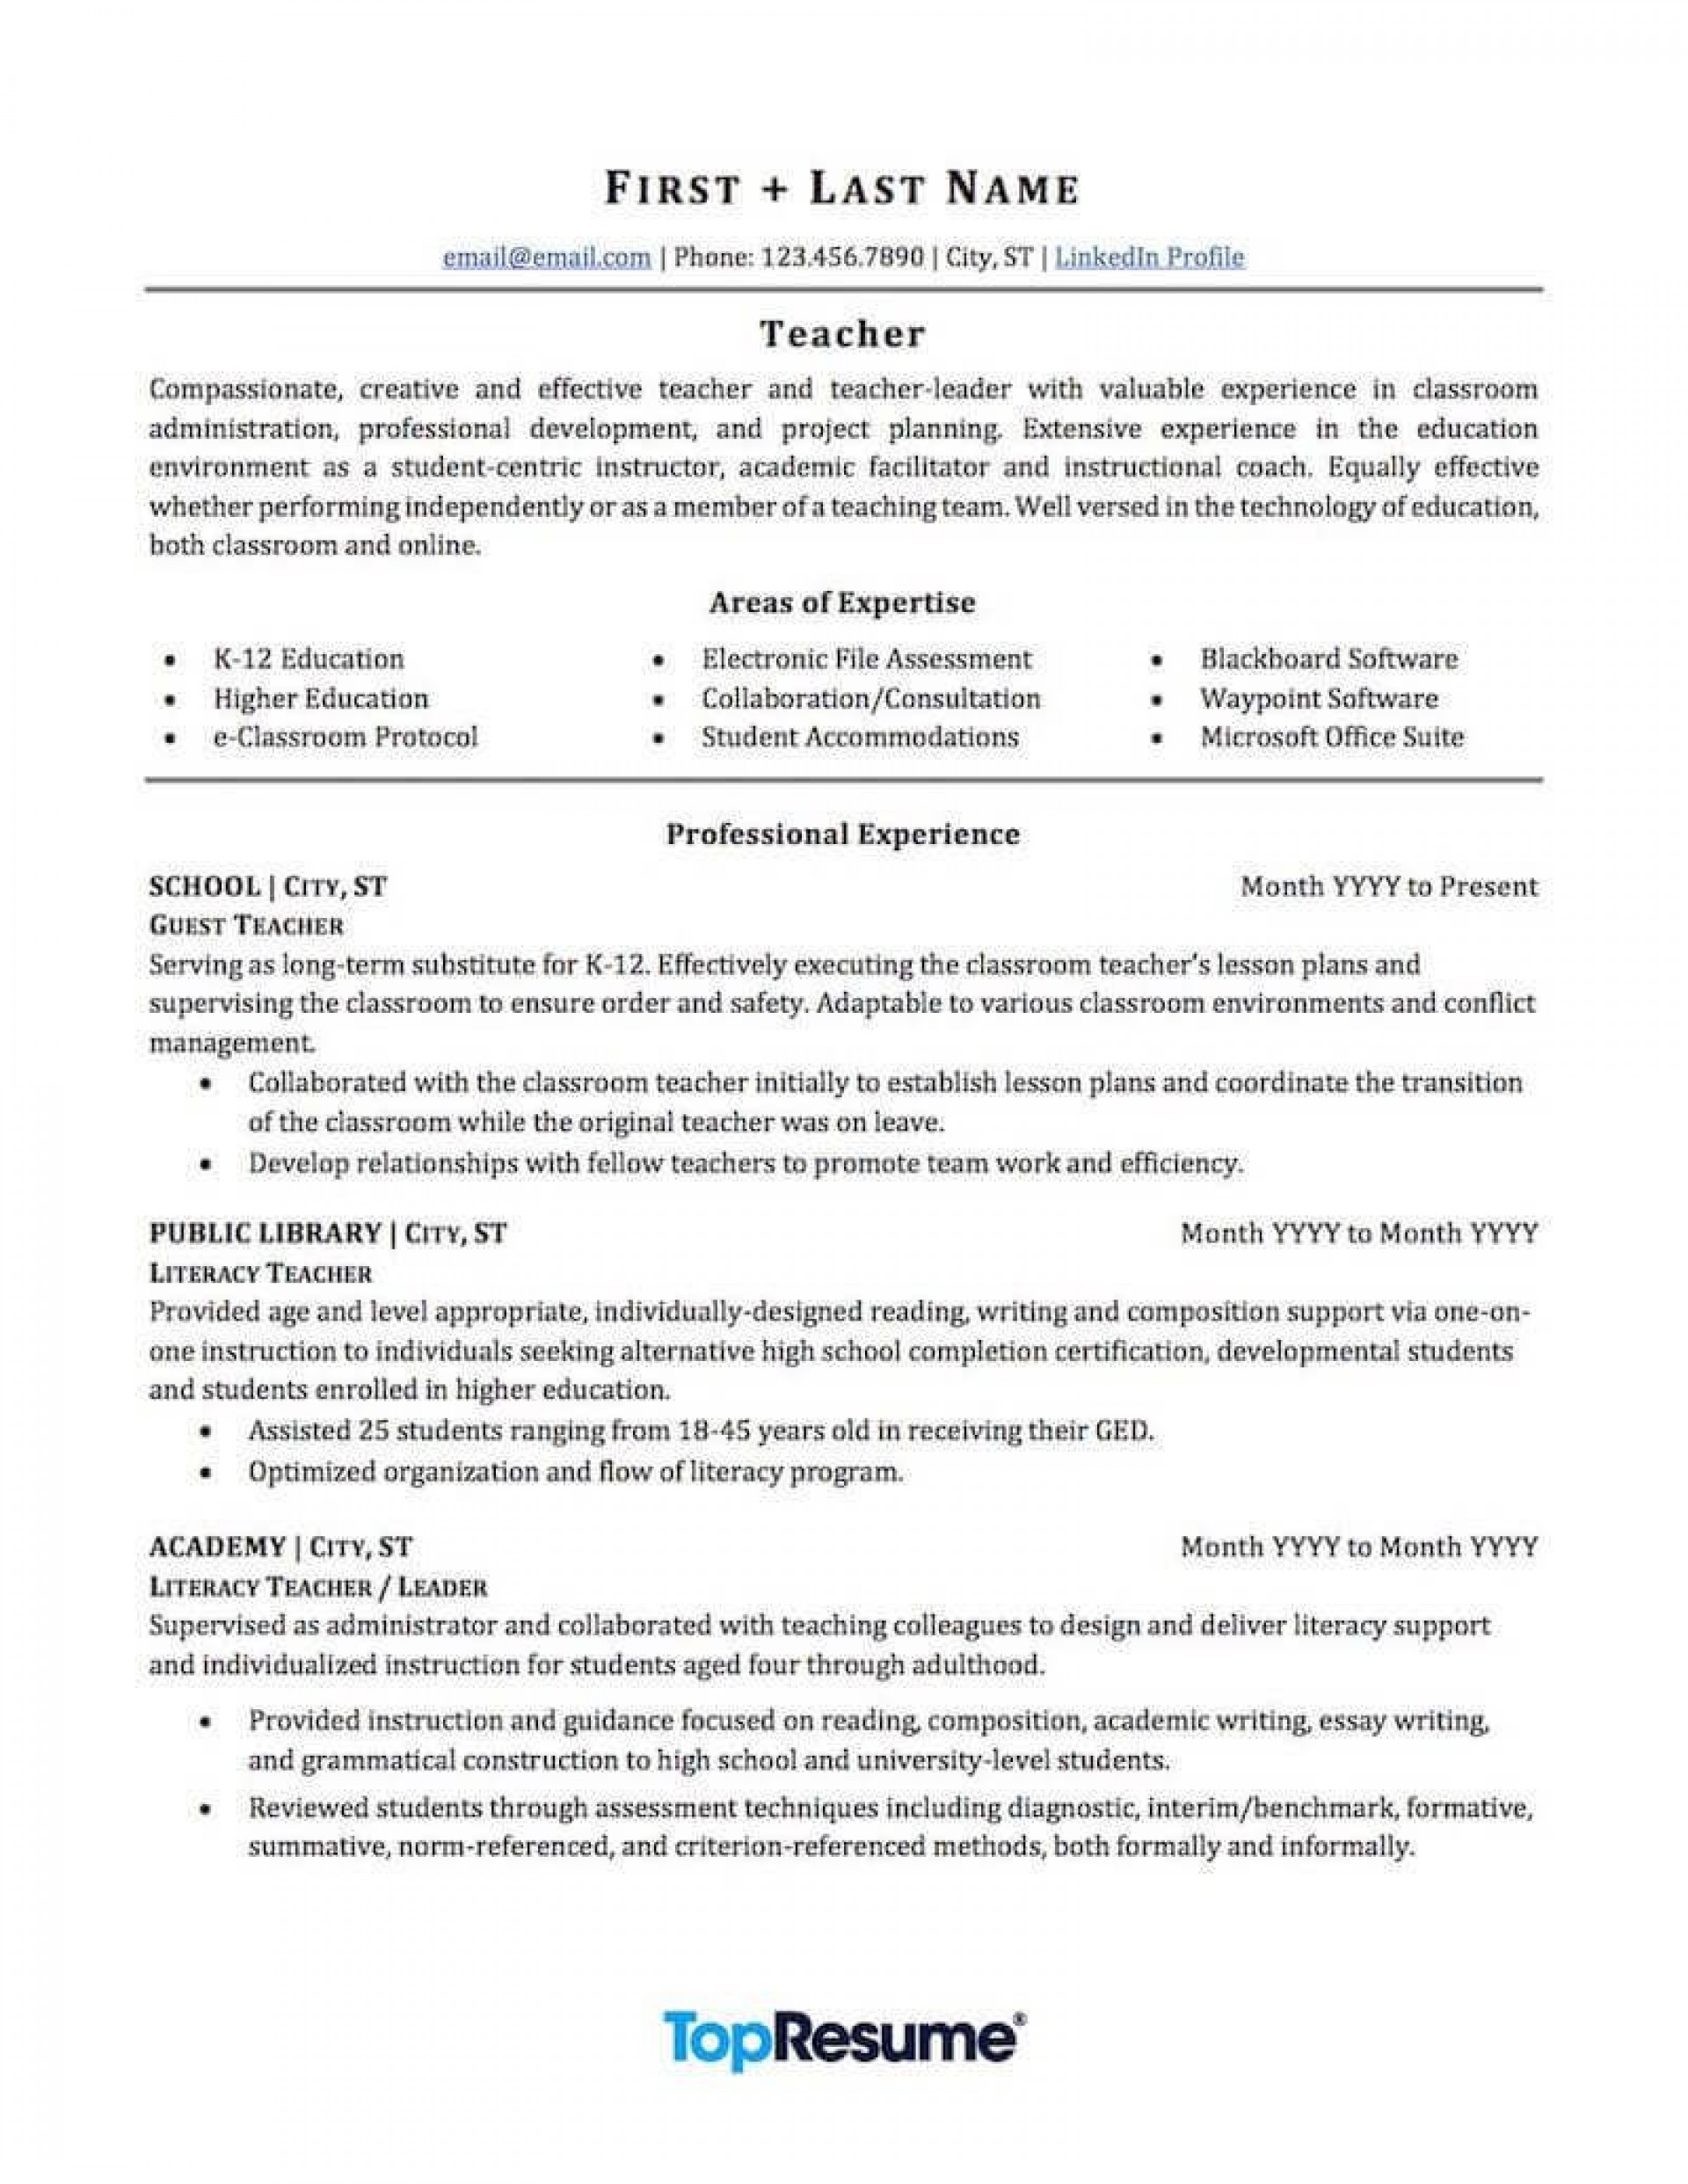 003 Awesome Resume Template For Teaching Sample  Cv Job Application Assistant In Pakistan1920